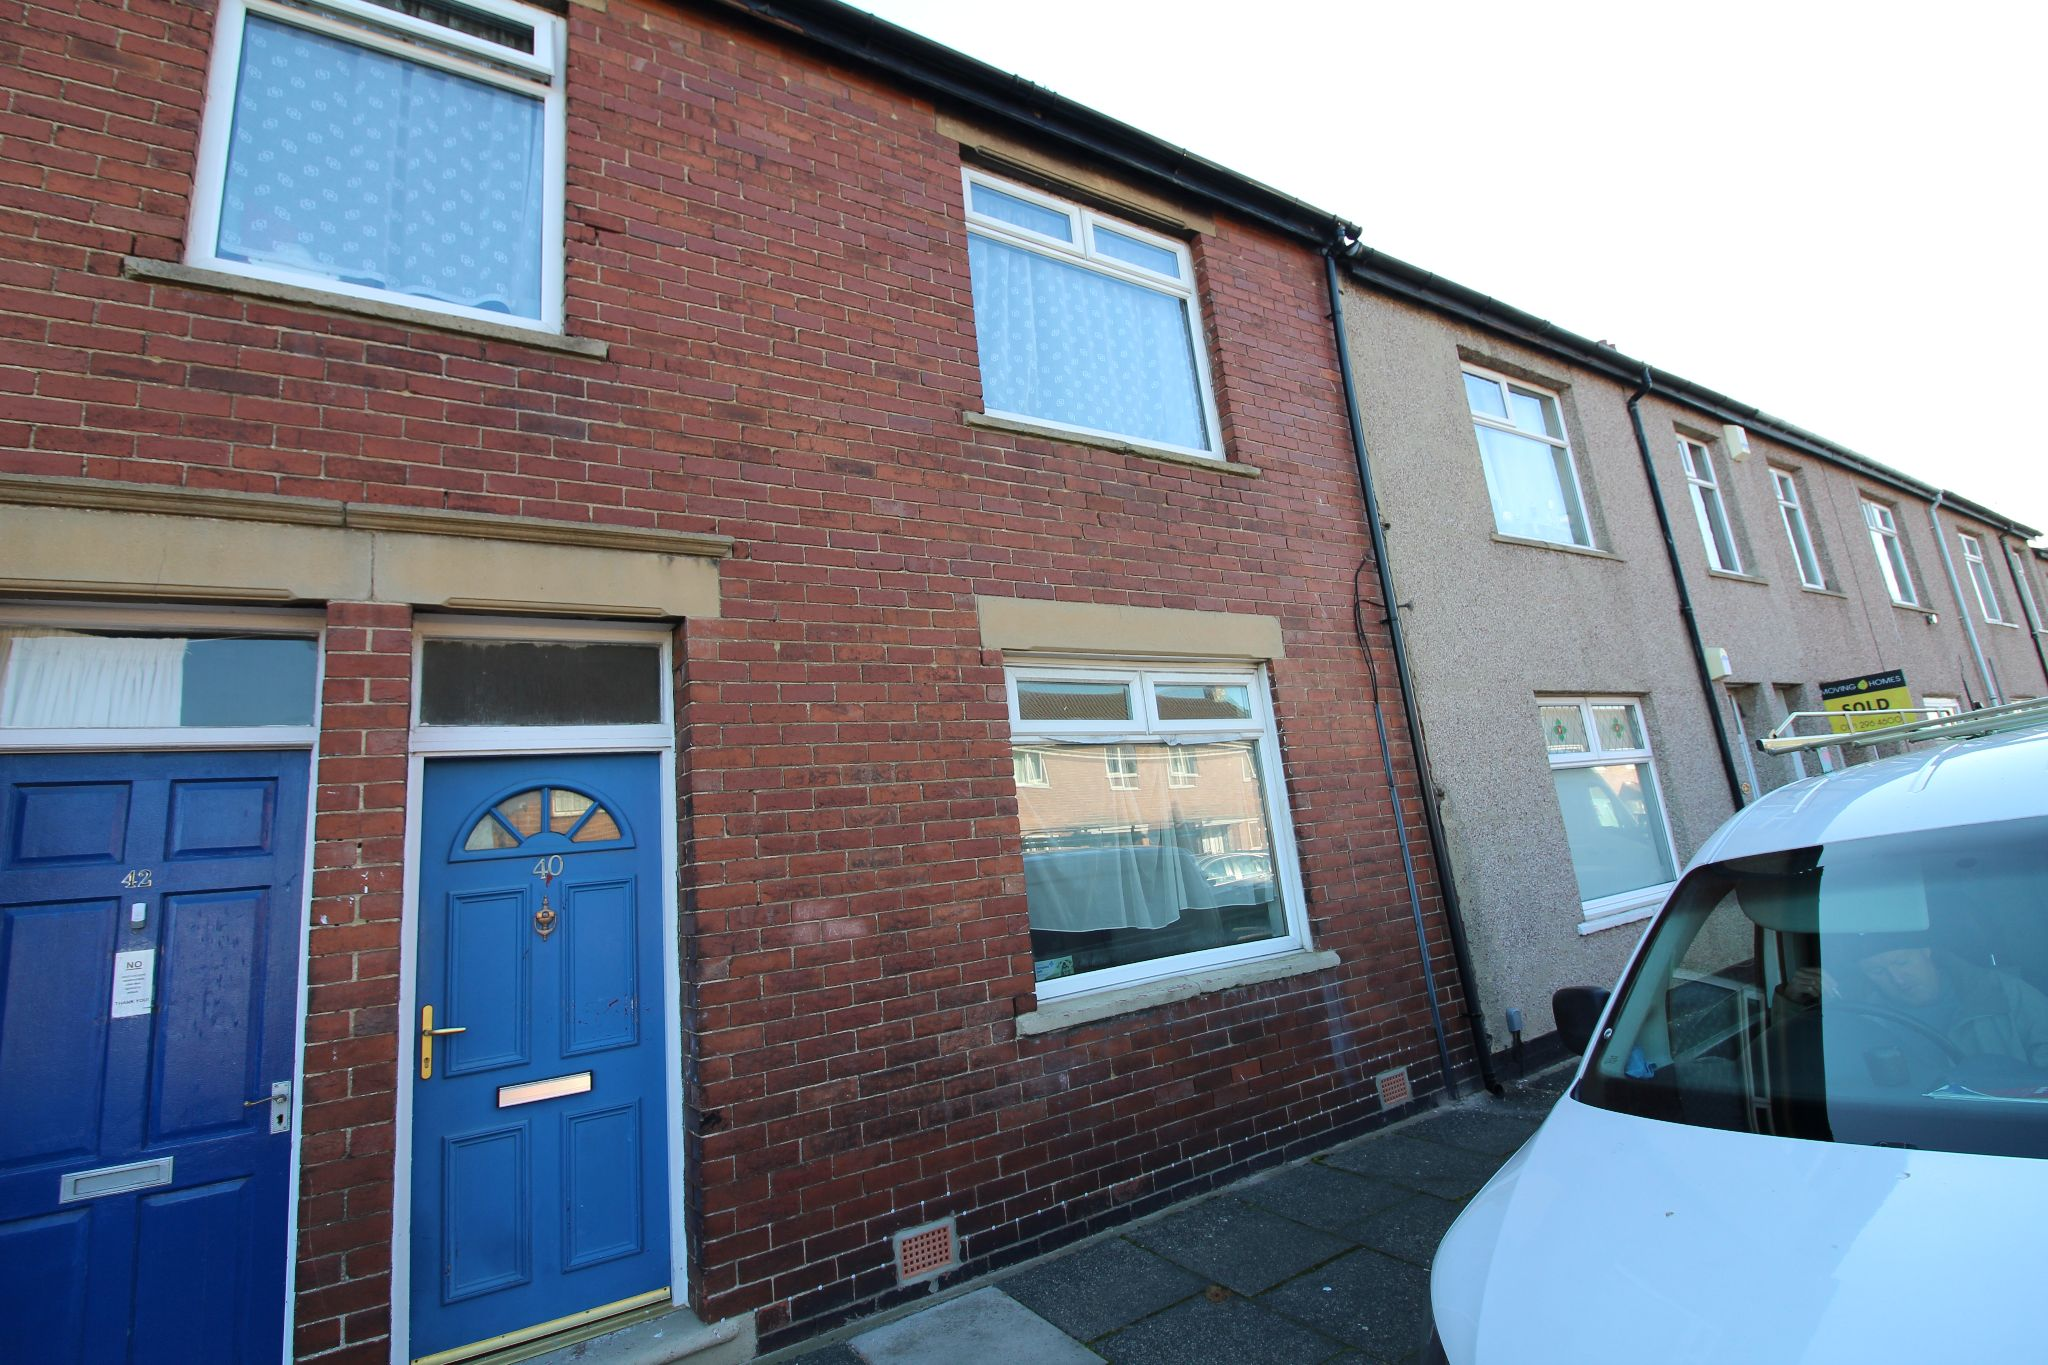 2 bedroom apartment flat/apartment To Let in Wallsend - Property photograph.